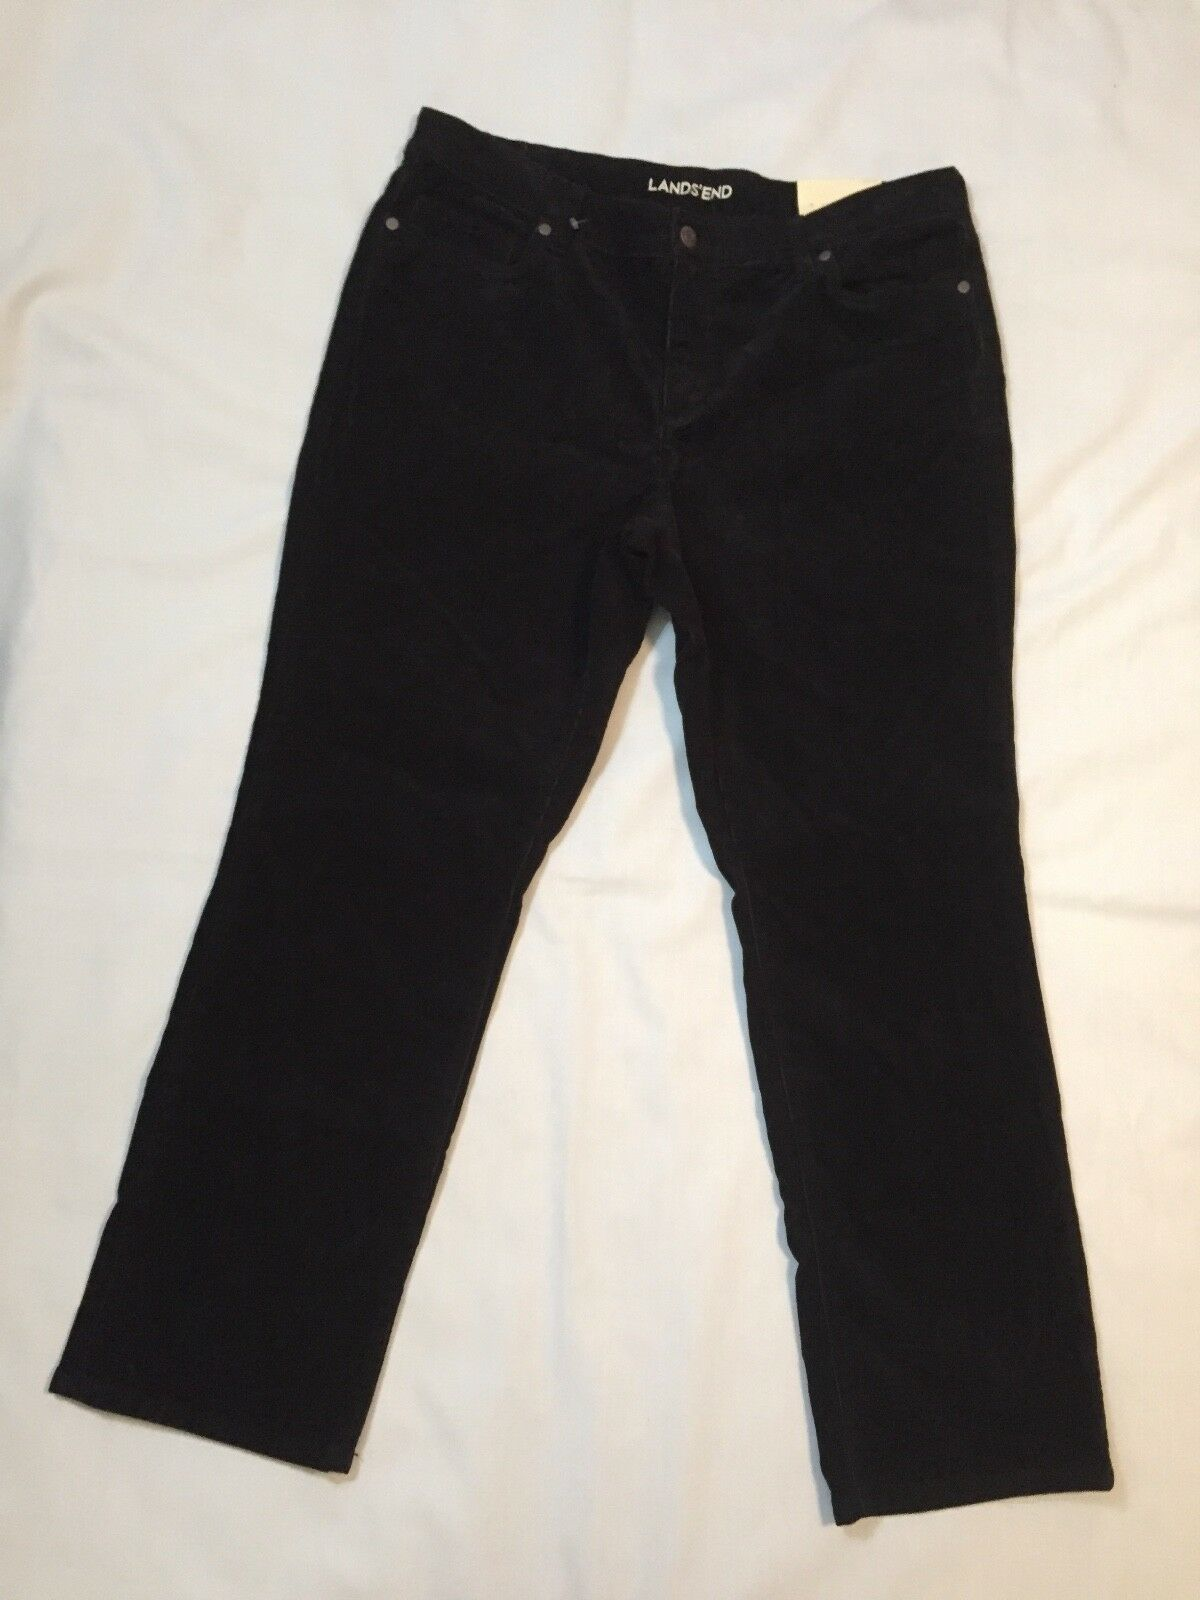 Lands' End Women's Mid Rise Straight Leg Corduroy Pants Size 14P New with Tags